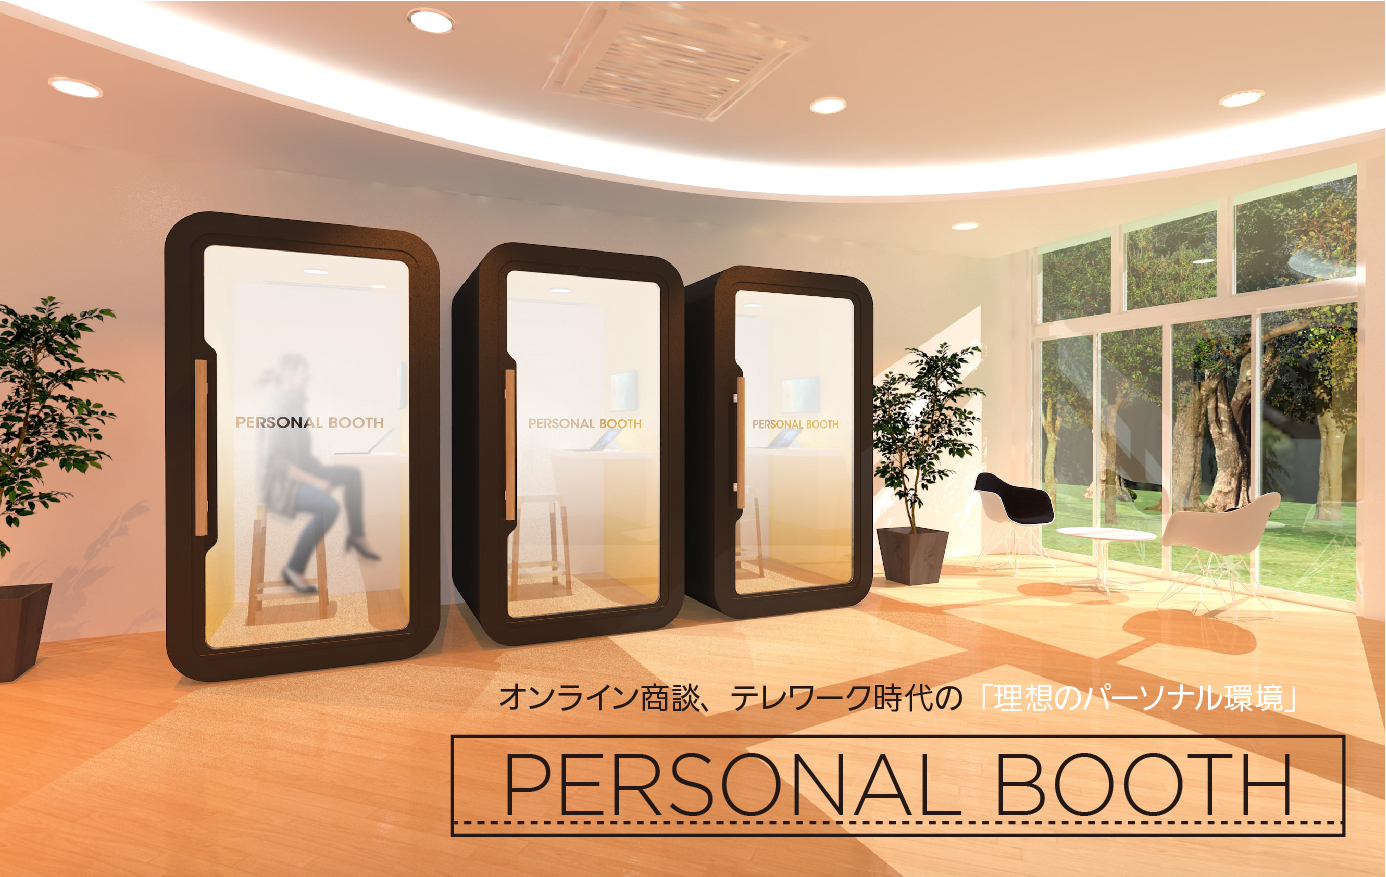 PERSONAL BOOTH PB121222